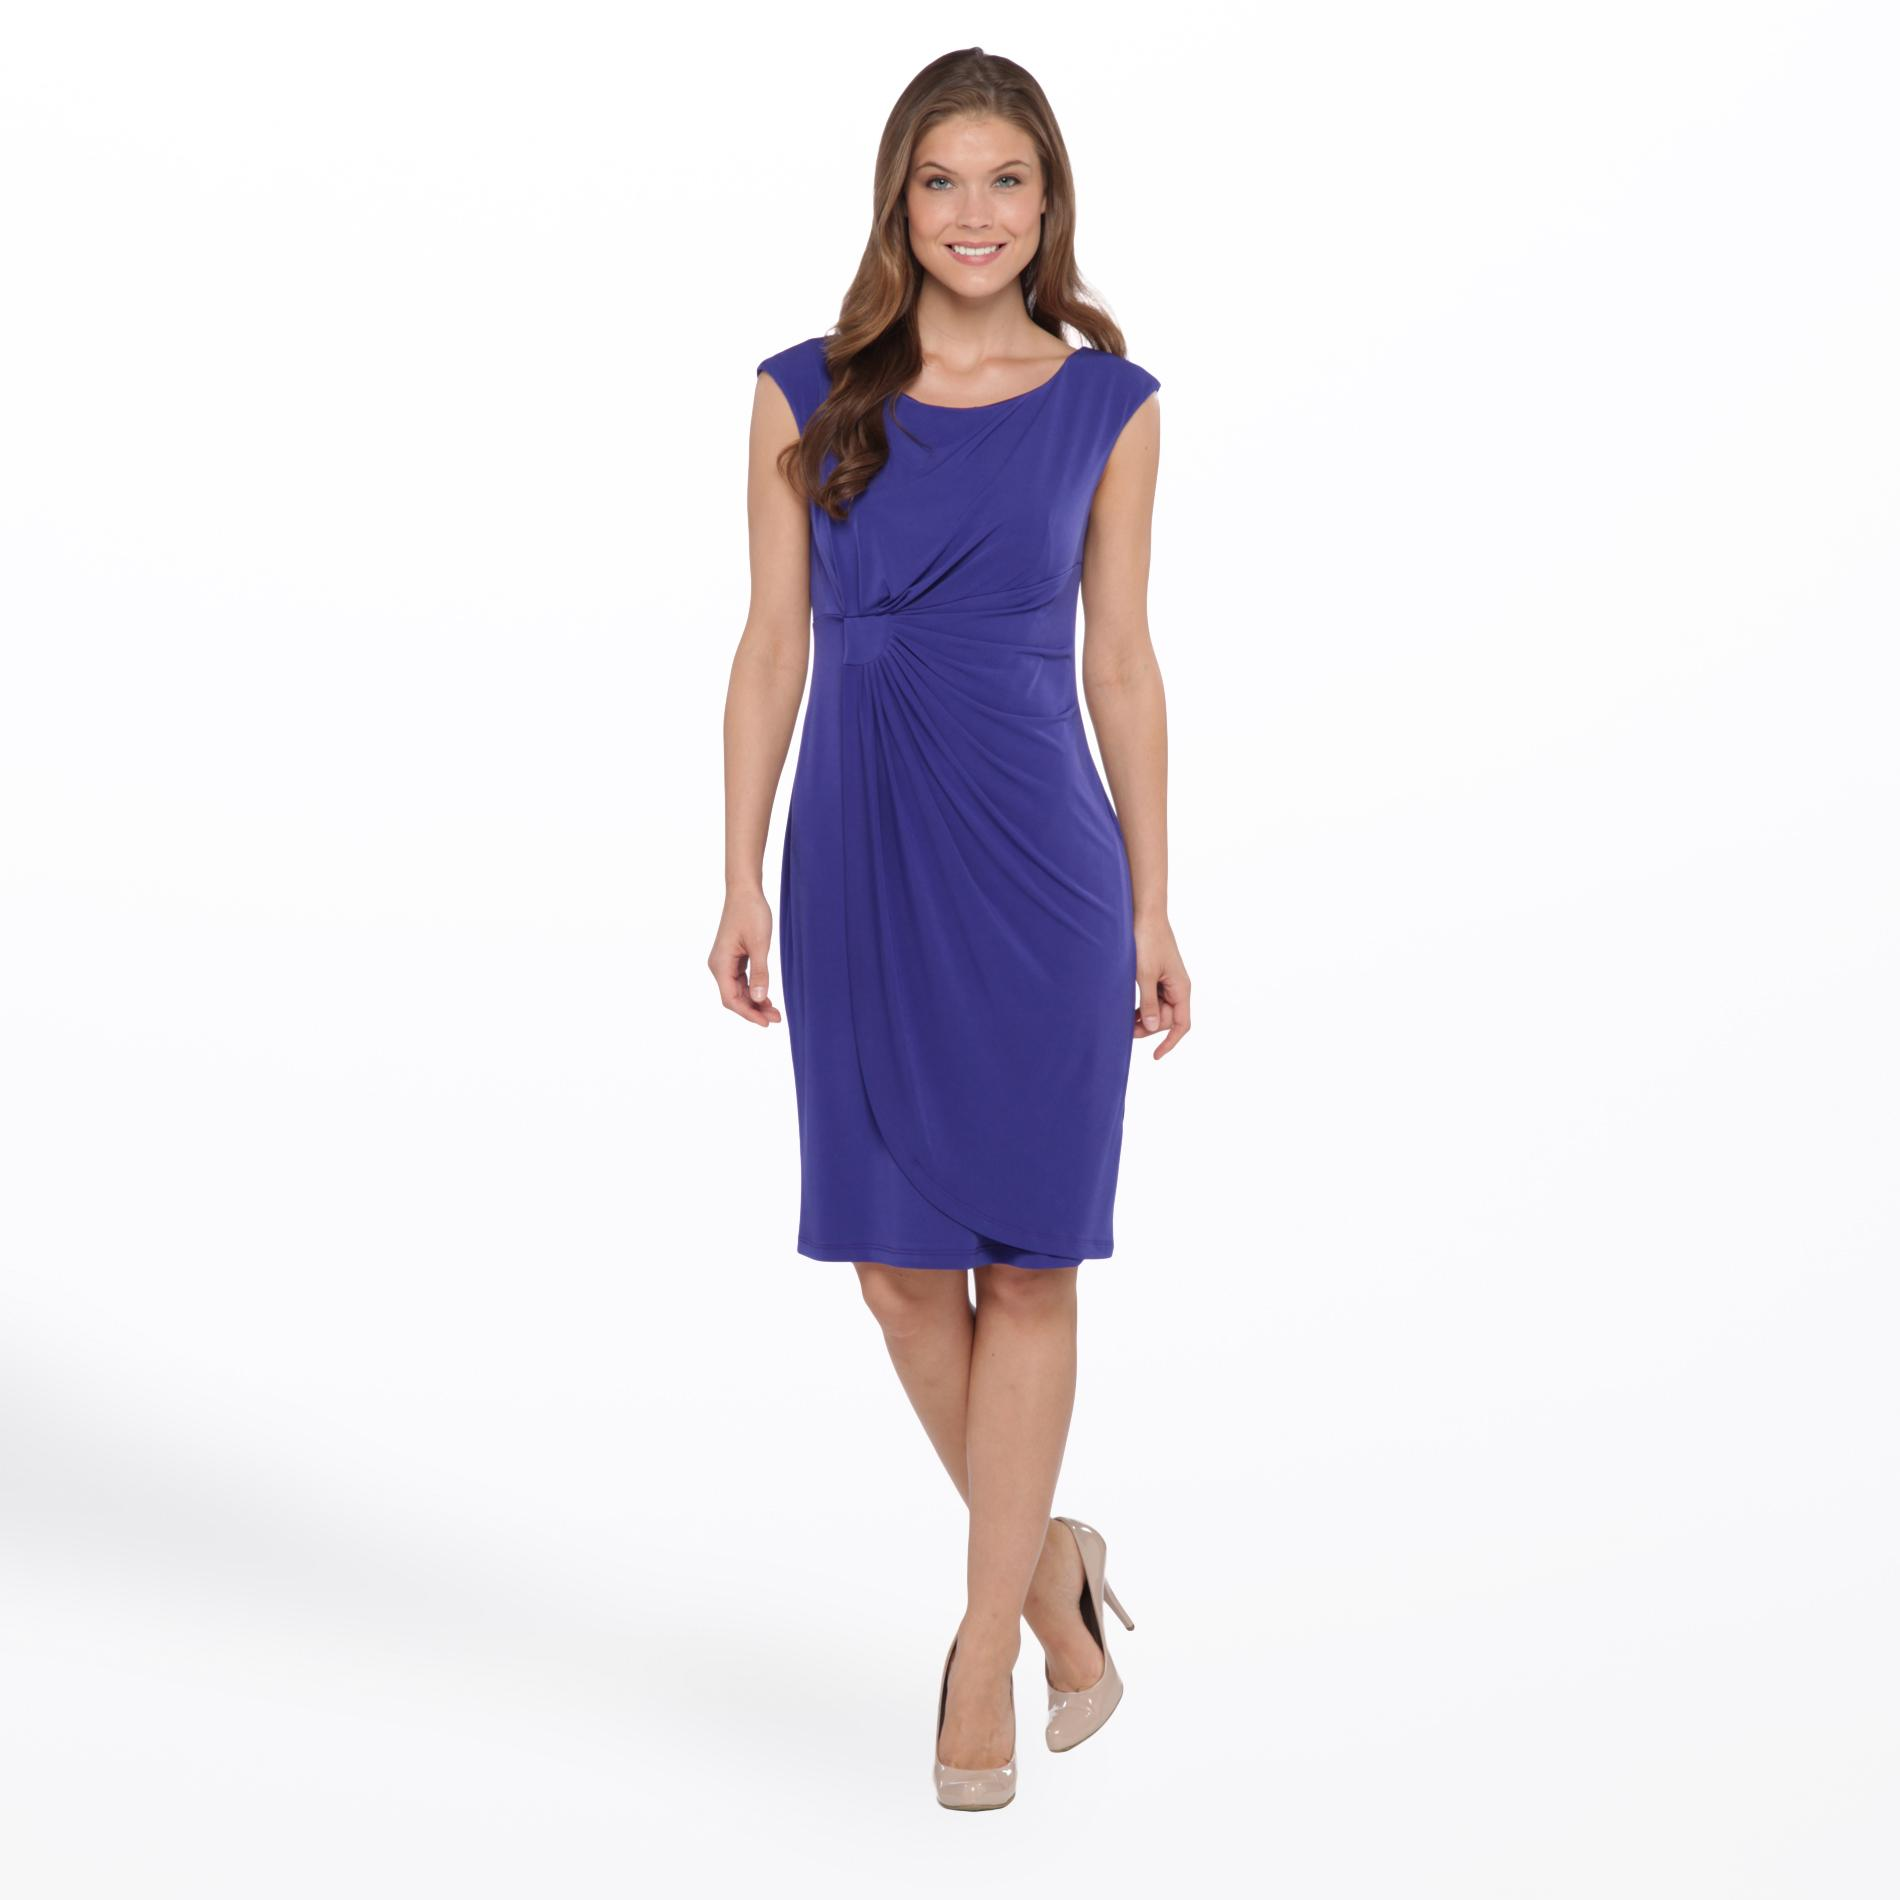 Connected Apparel Women's Knit Dress - Gathered at Sears.com